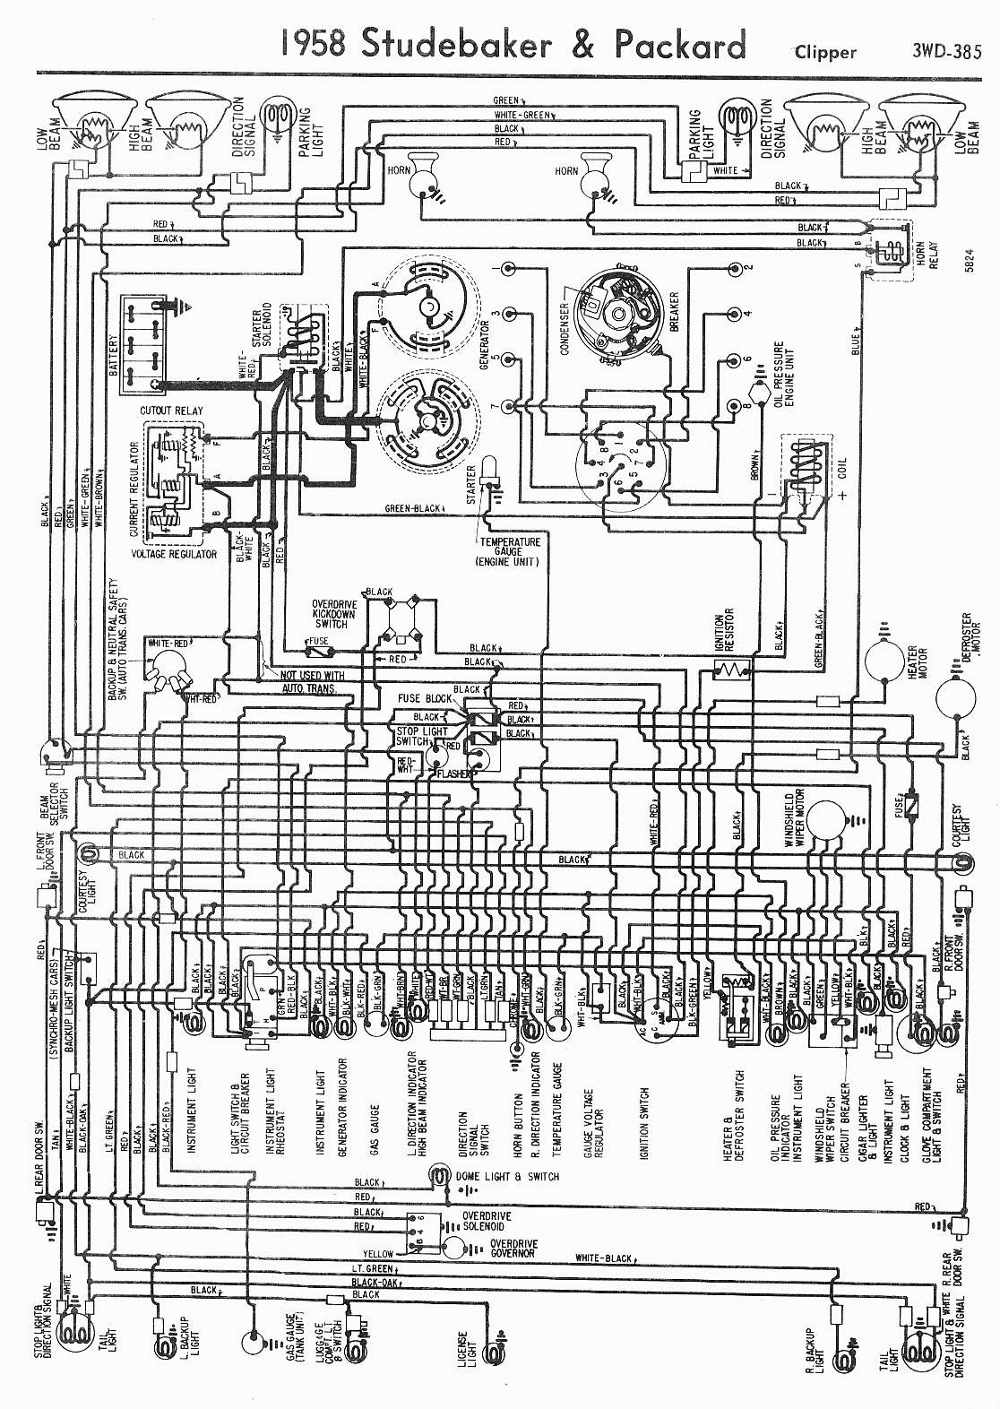 1949 Packard Wiring Diagram Schematic Diagrams 1953 Plymouth Cranbrook 1950 Enthusiast U2022 1932